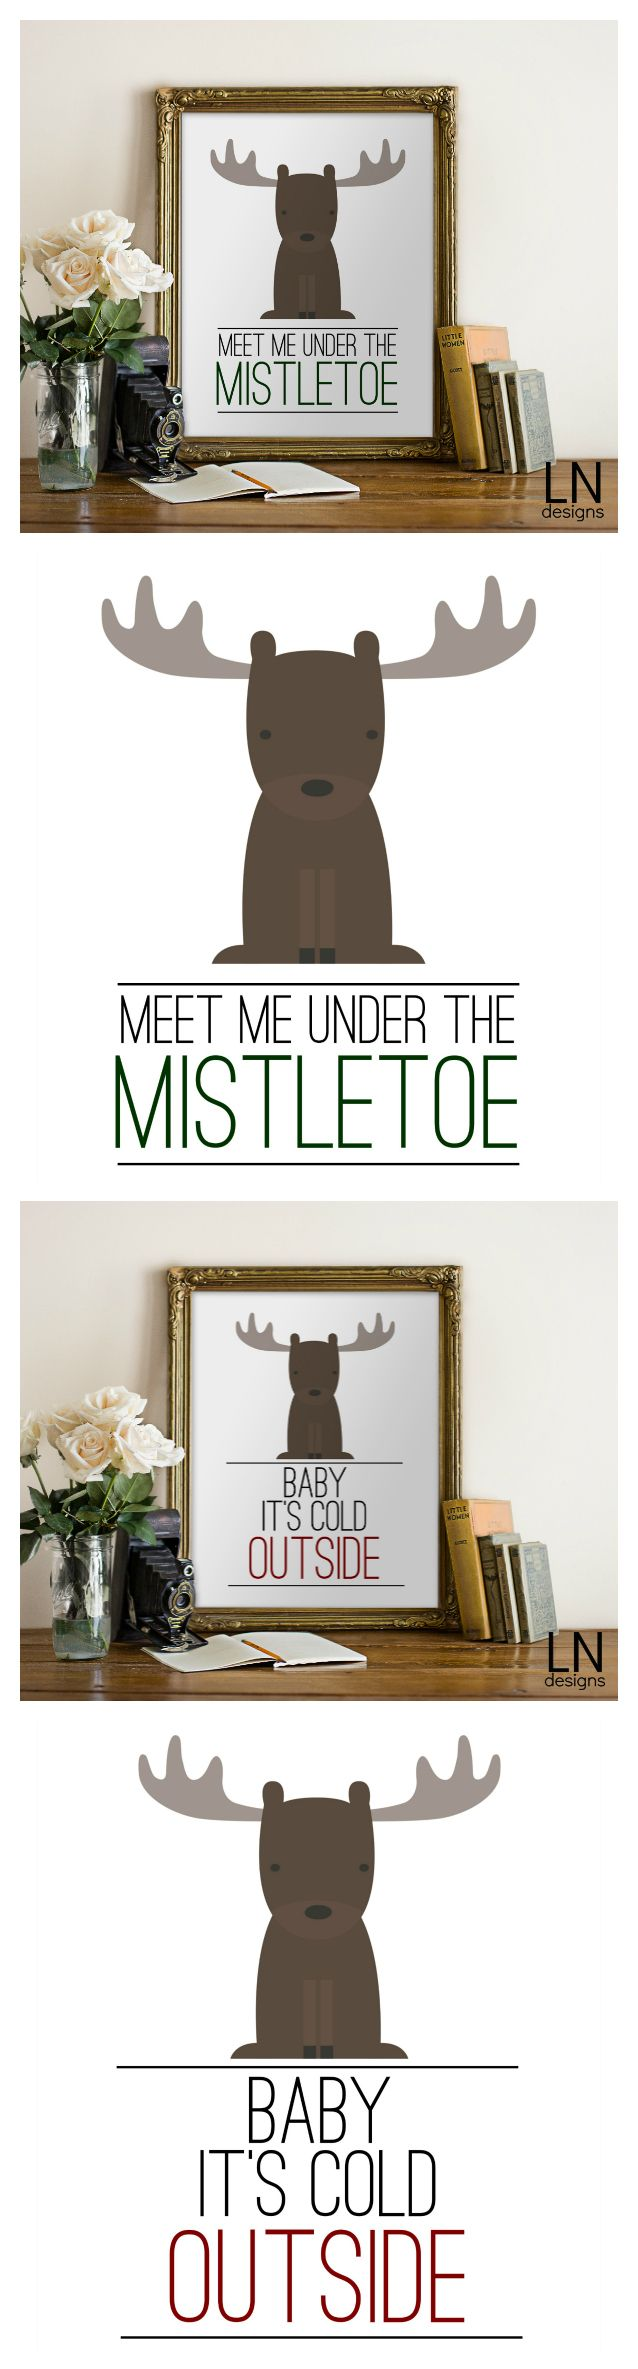 Free Winter and Christmas Themed Printables. Meet Me Under the Mistletoe and Baby Its Cold Outside. So cute!